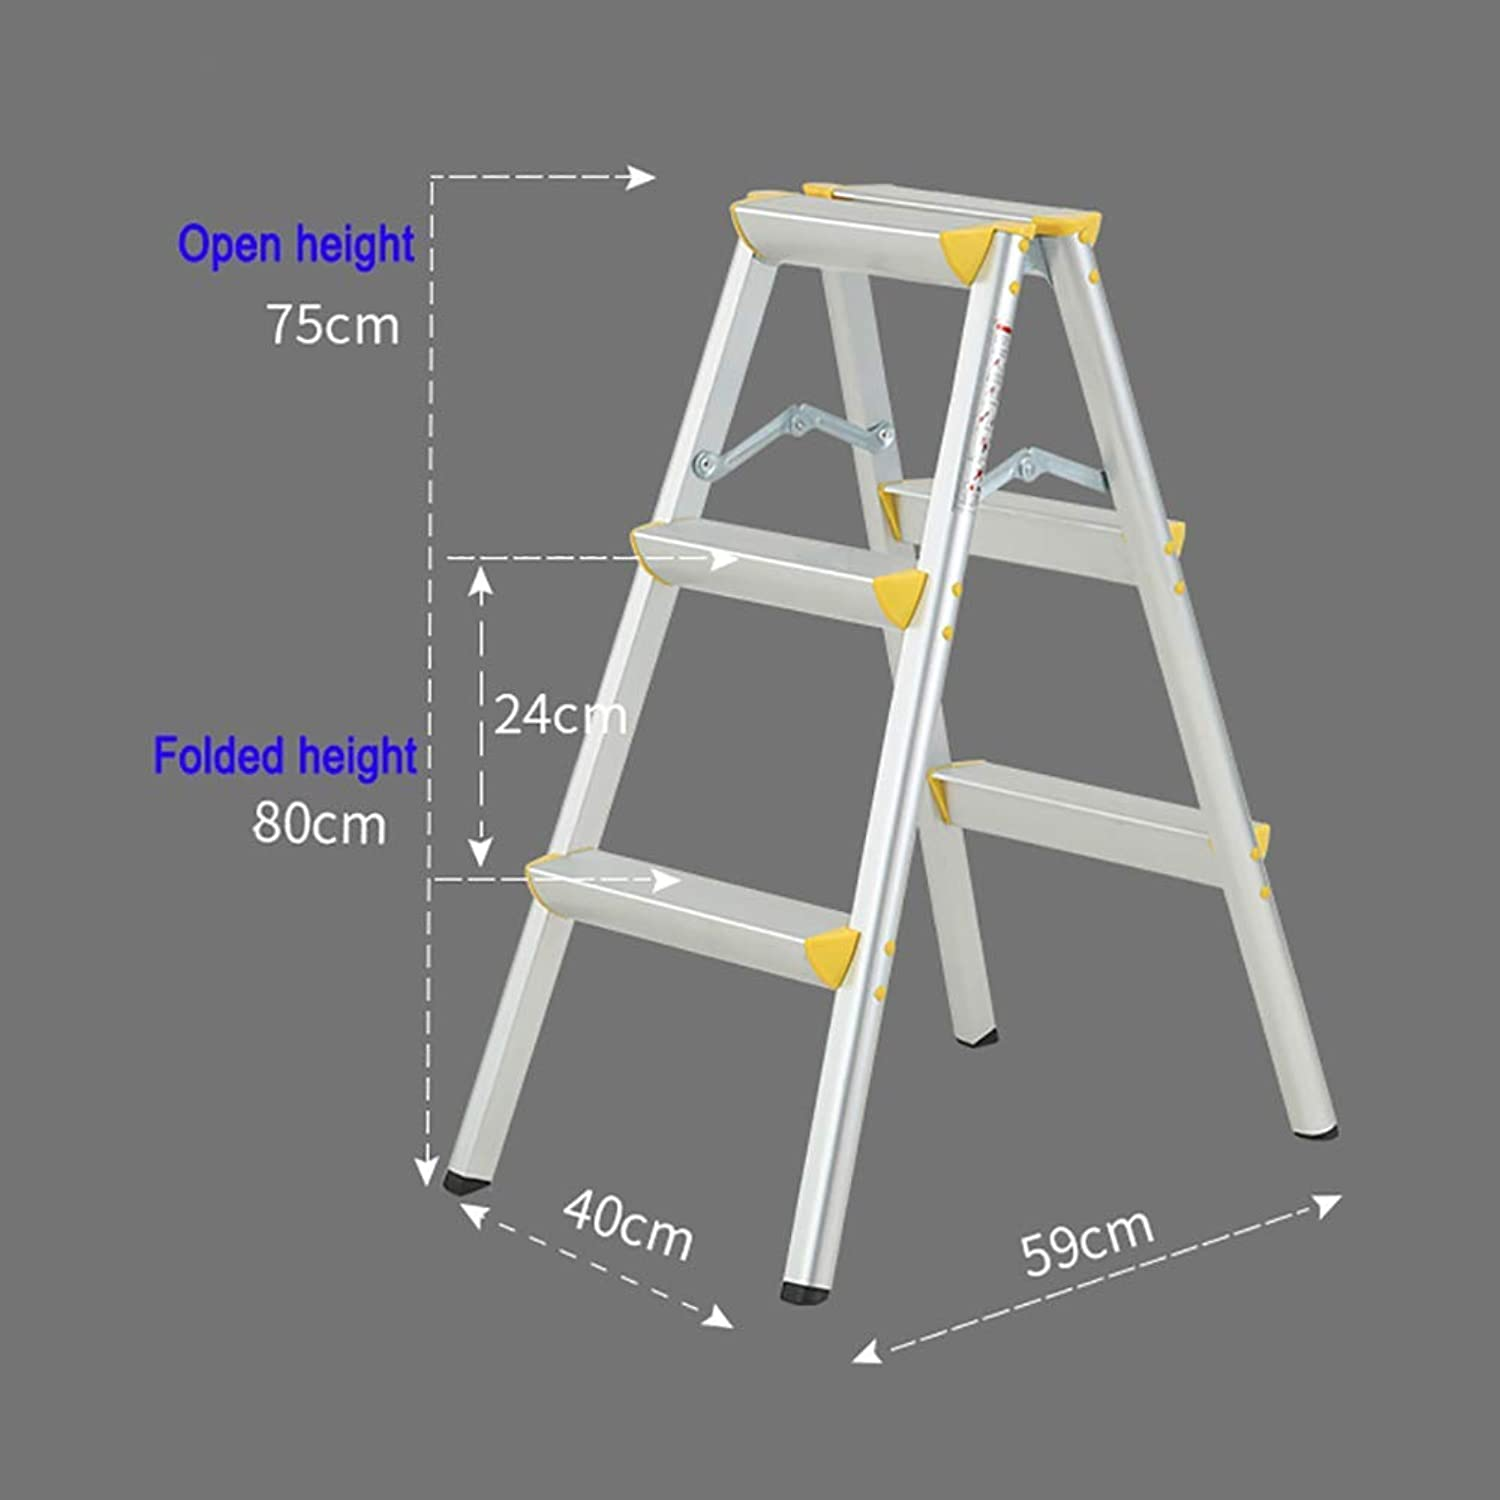 ZLL Household Step Stool, Photography Folding Step Stool, Step Stools Folding Step Stool, Adult Step Ladders for 220-330Lbs Capacity, Office Anti-Rust 3 Steps with Wide Pedal & Anti-Slip Footpad